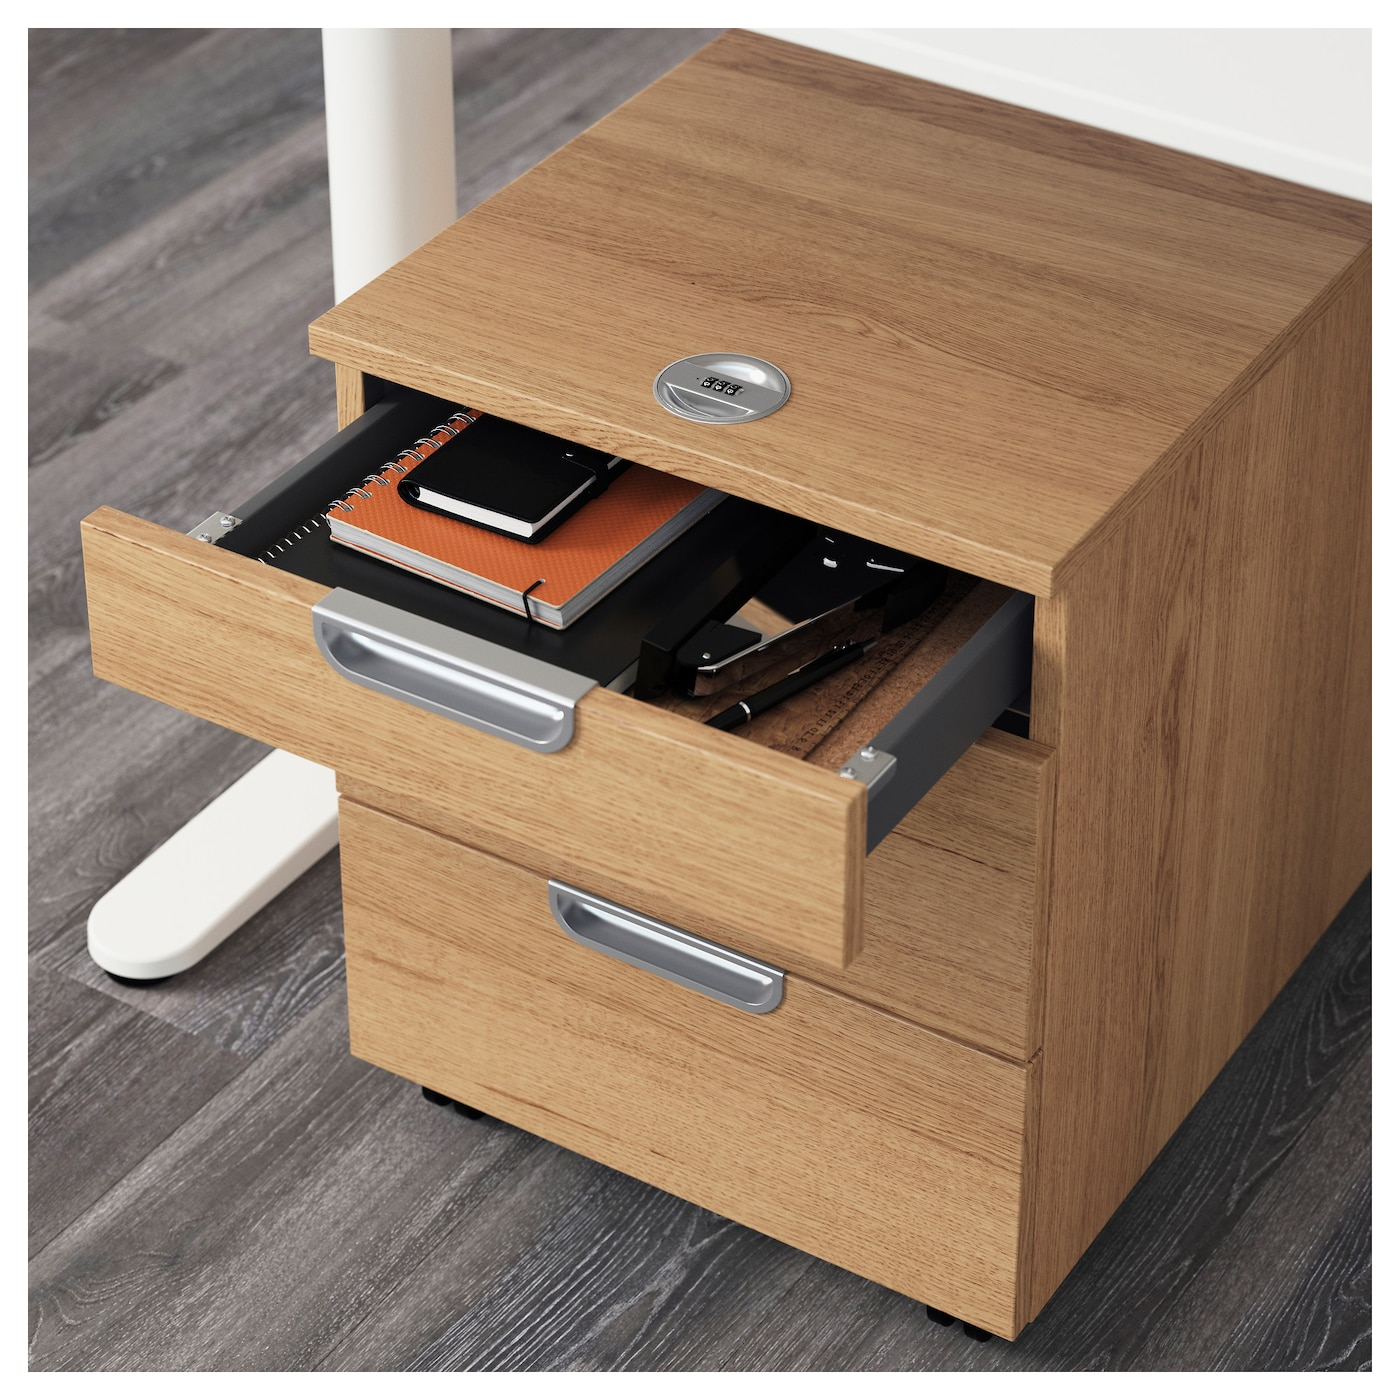 IKEA GALANT drawer unit on castors Drawers with integrated damper for silent and gentle closing.